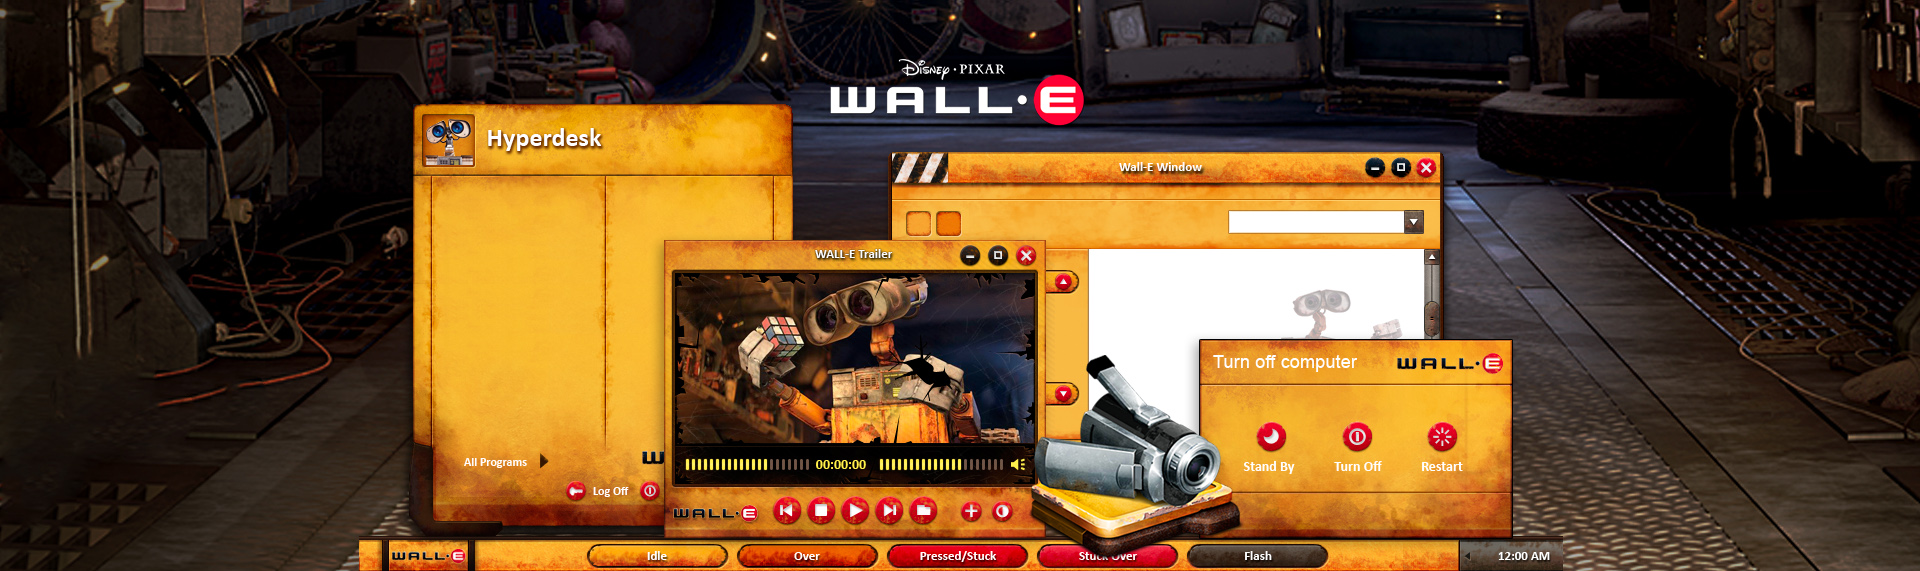 Disney Pixar's WALL-E  Client: Under License from The Walt Disney Company  Introducing the official Pixar-approved WALL-E Windows desktop theme. Powered by The Skins Factory's Hyperdesk advanced Windows desktop theming solution, this desktop theme featured 2 themes based on WALL-E's yellow, rusted metallic body and includes over 50 stylized desktop icons, 18 wallpapers from the hit film, and a Windows Media Player skin. This Windows desktop theme is no longer available.